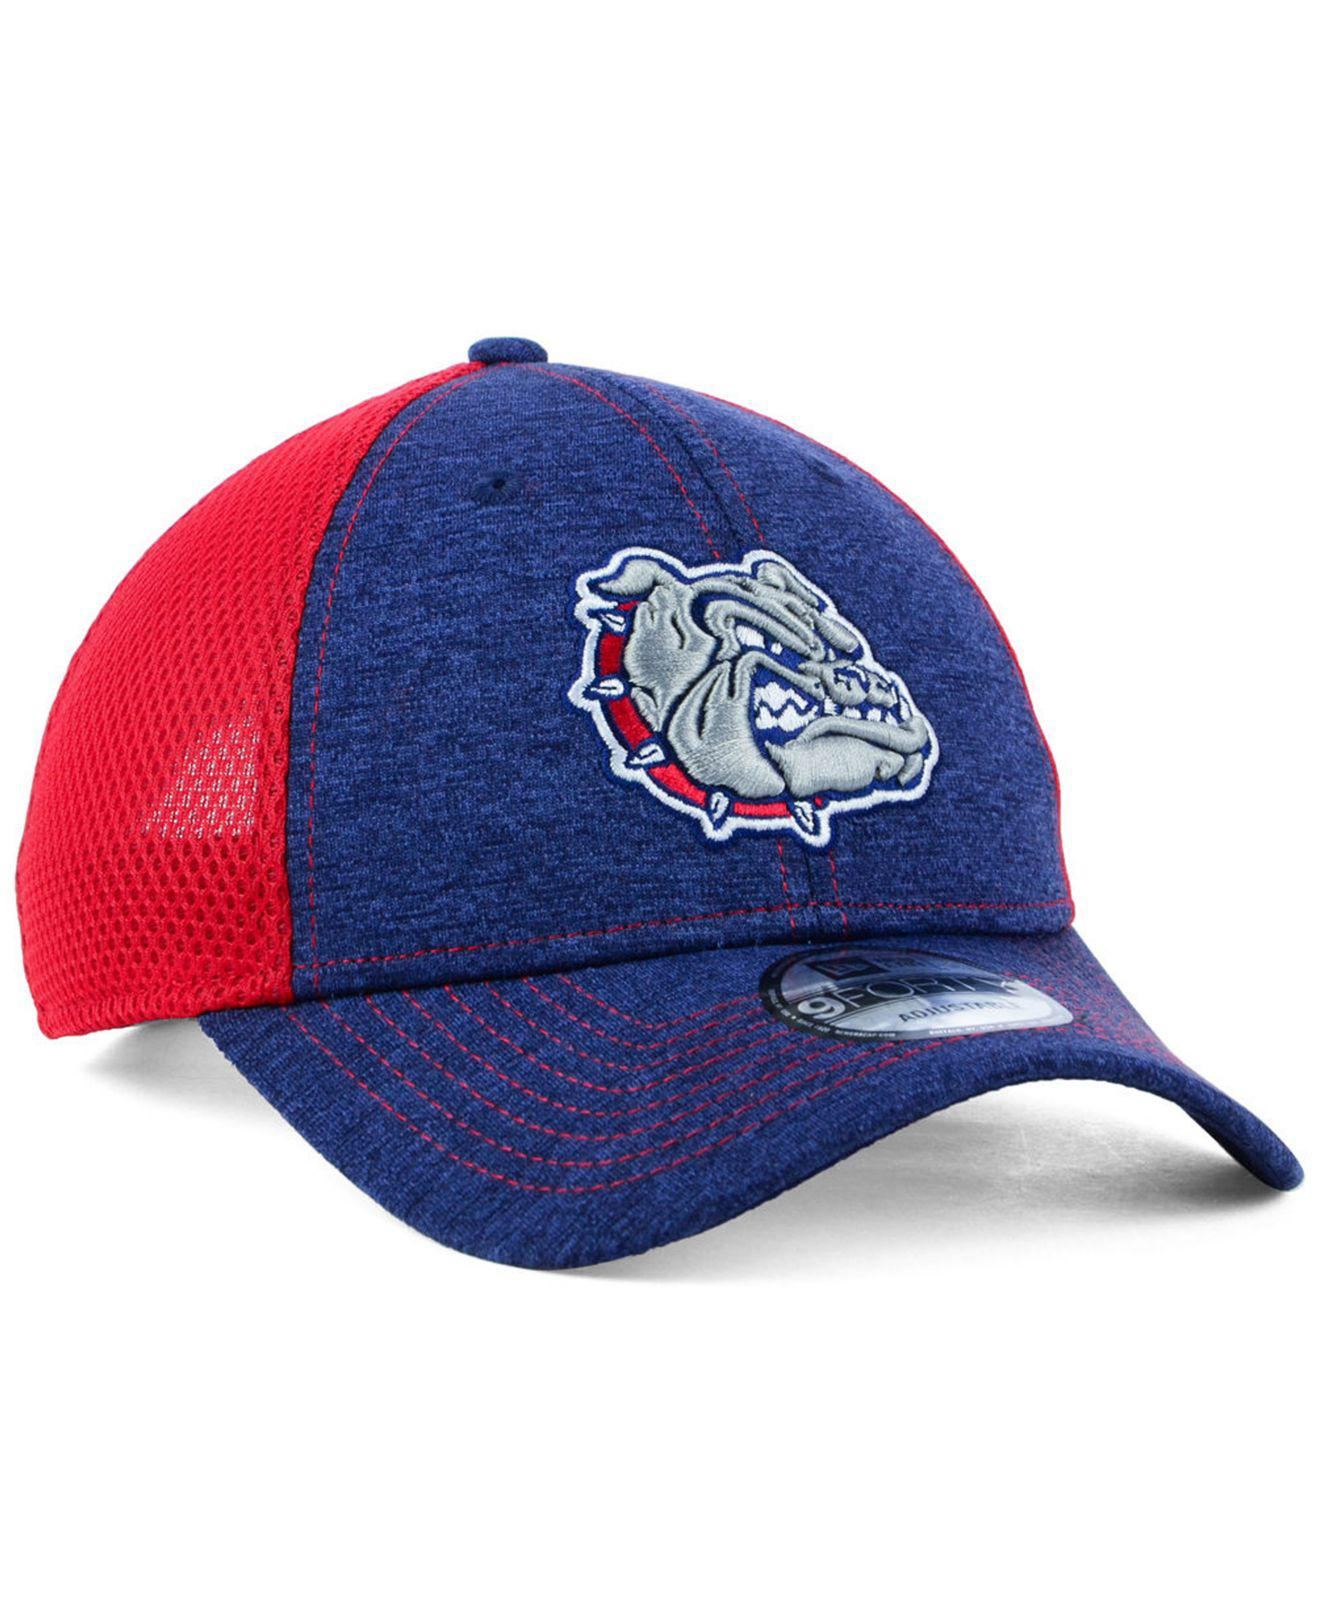 info for d4c48 70d9d Lyst - KTZ Gonzaga Bulldogs Shadow Turn 9forty Cap in Blue for Men